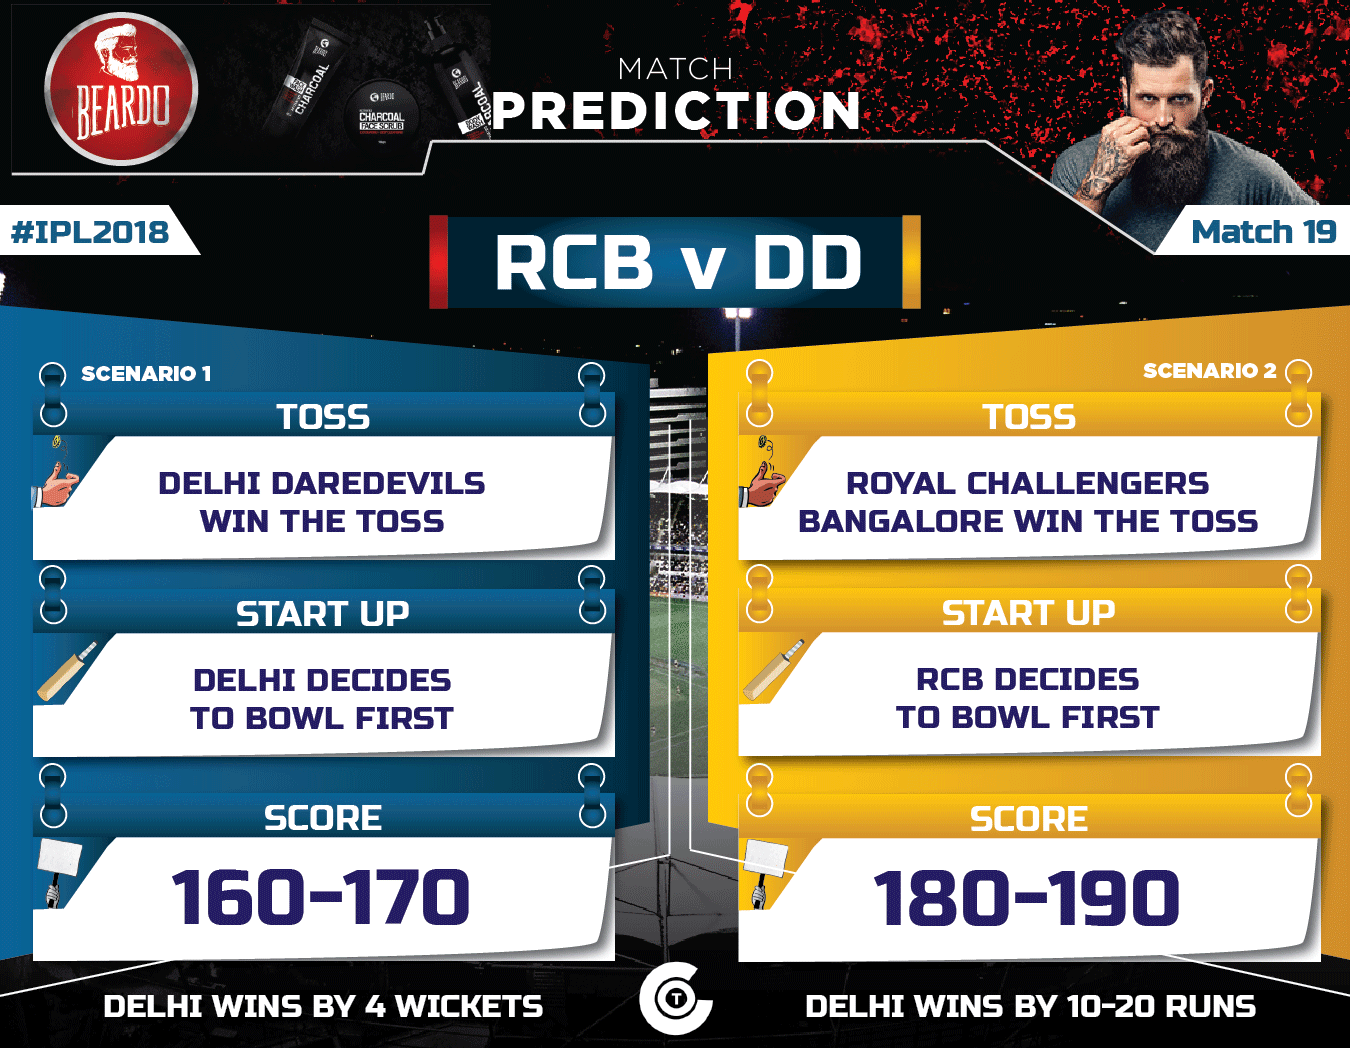 IPL-2018-Todays-match-prediction-RCB-VS-DD--Match-19-Prediction-ROYAL-CHALLENGERS-BANGALORE-vs-DELHI-DAREDEVILS